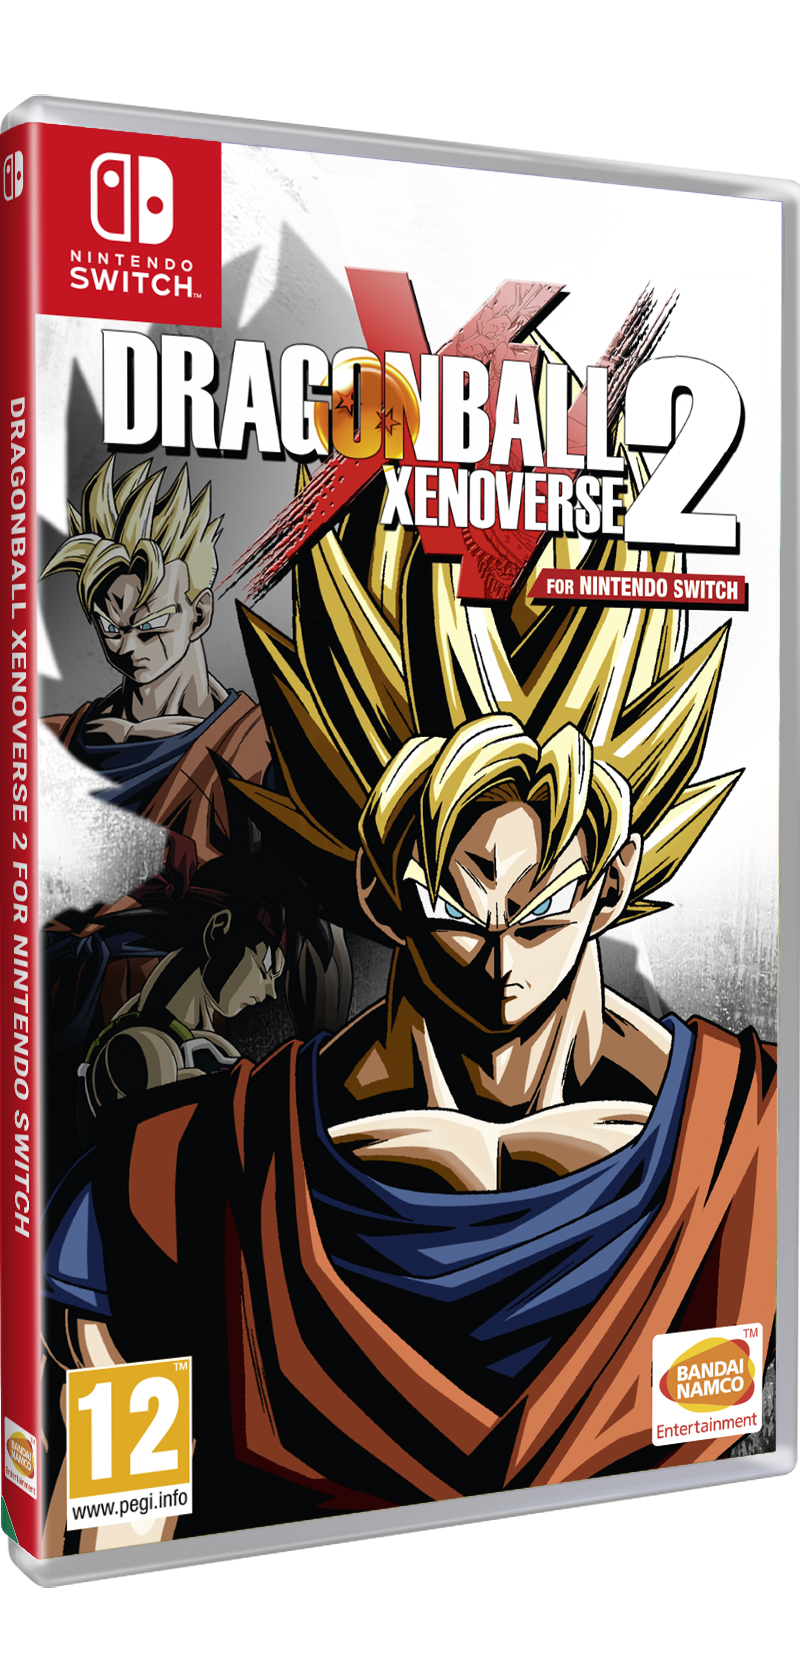 SWITCH VERSION OF DRAGON BALL XENOVERSE 2 AVAILABLE IN EUROPE ON SEPTEMBER 22nd